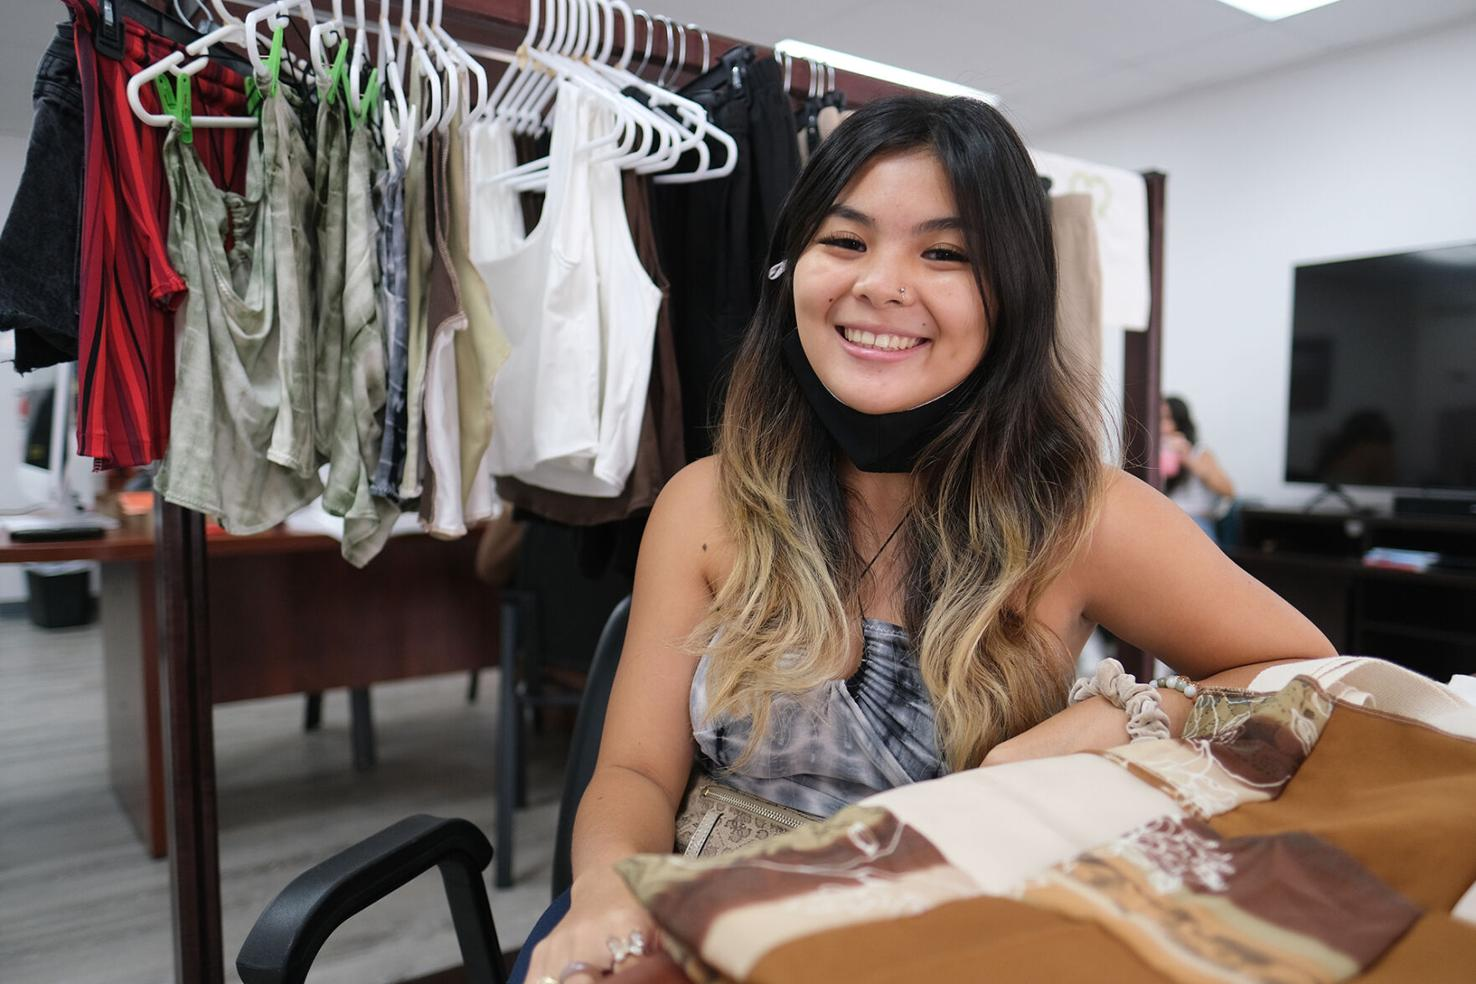 UOG business student Sierra Avellana launched her brand of upcycled apparel and products